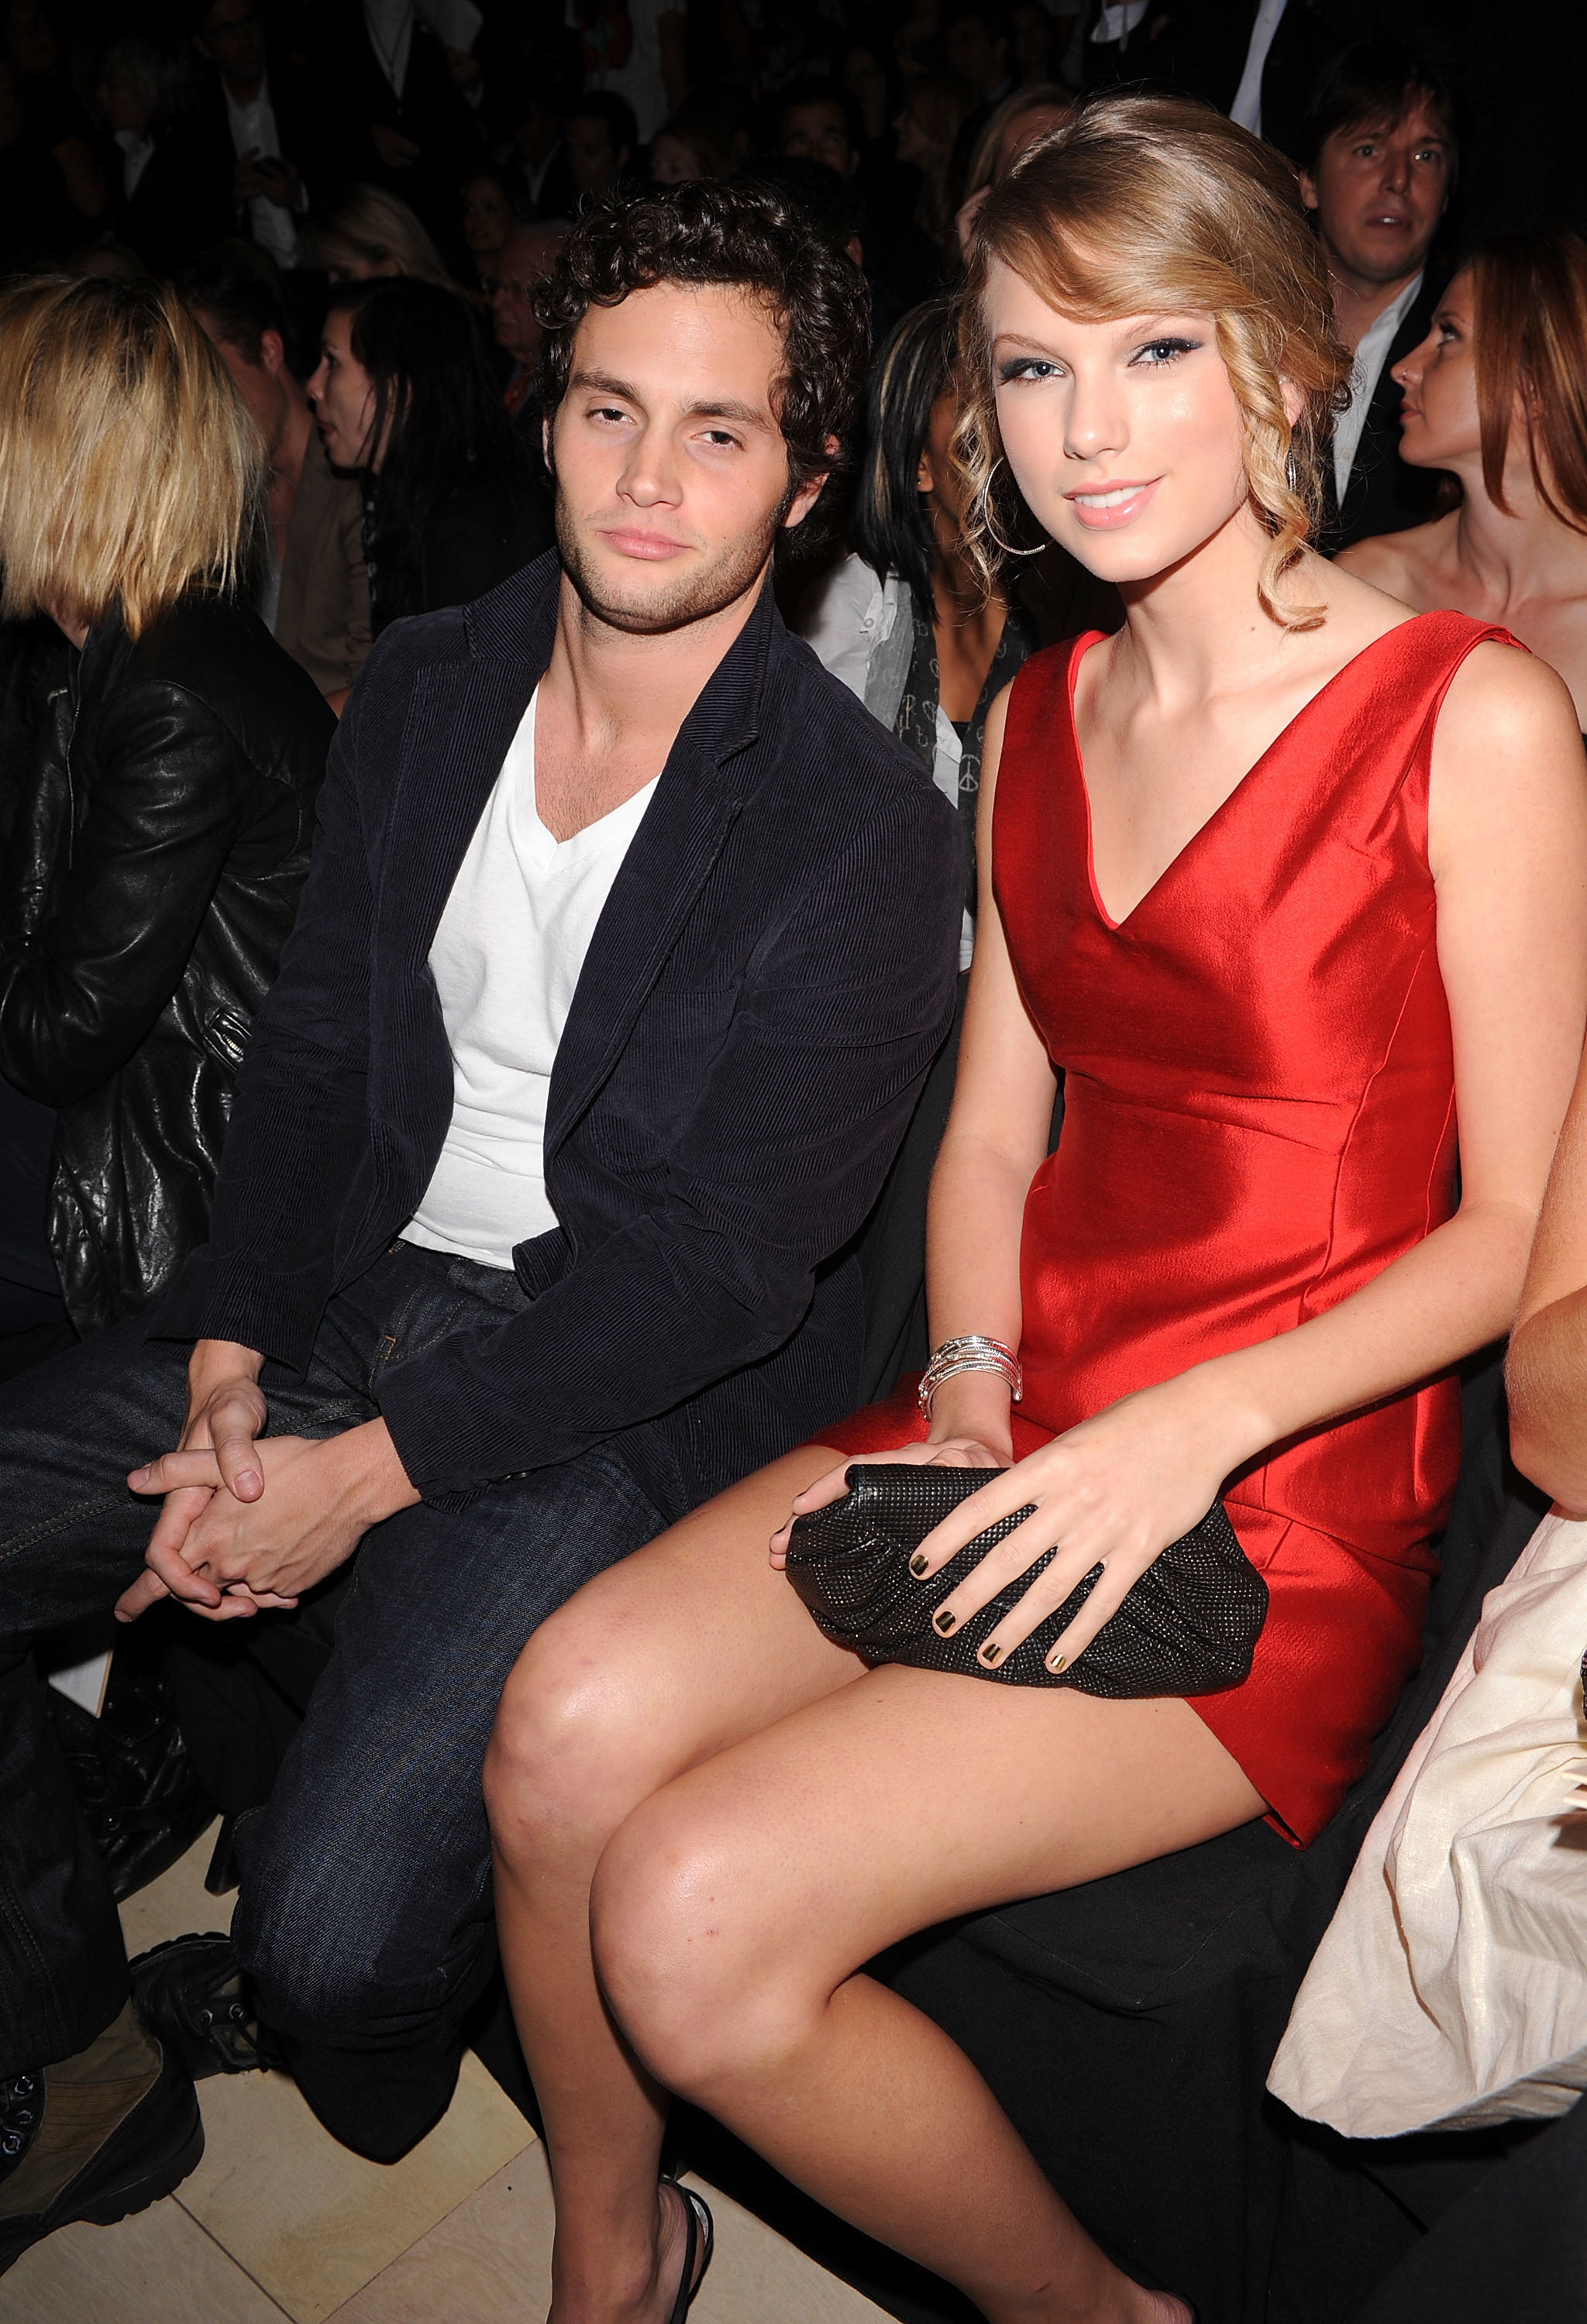 Penn Badgley and Taylor Swift attend the Tommy Hilfiger Spring 2010 Mens & Womens Collection in New York City on Sept. 17, 2009.